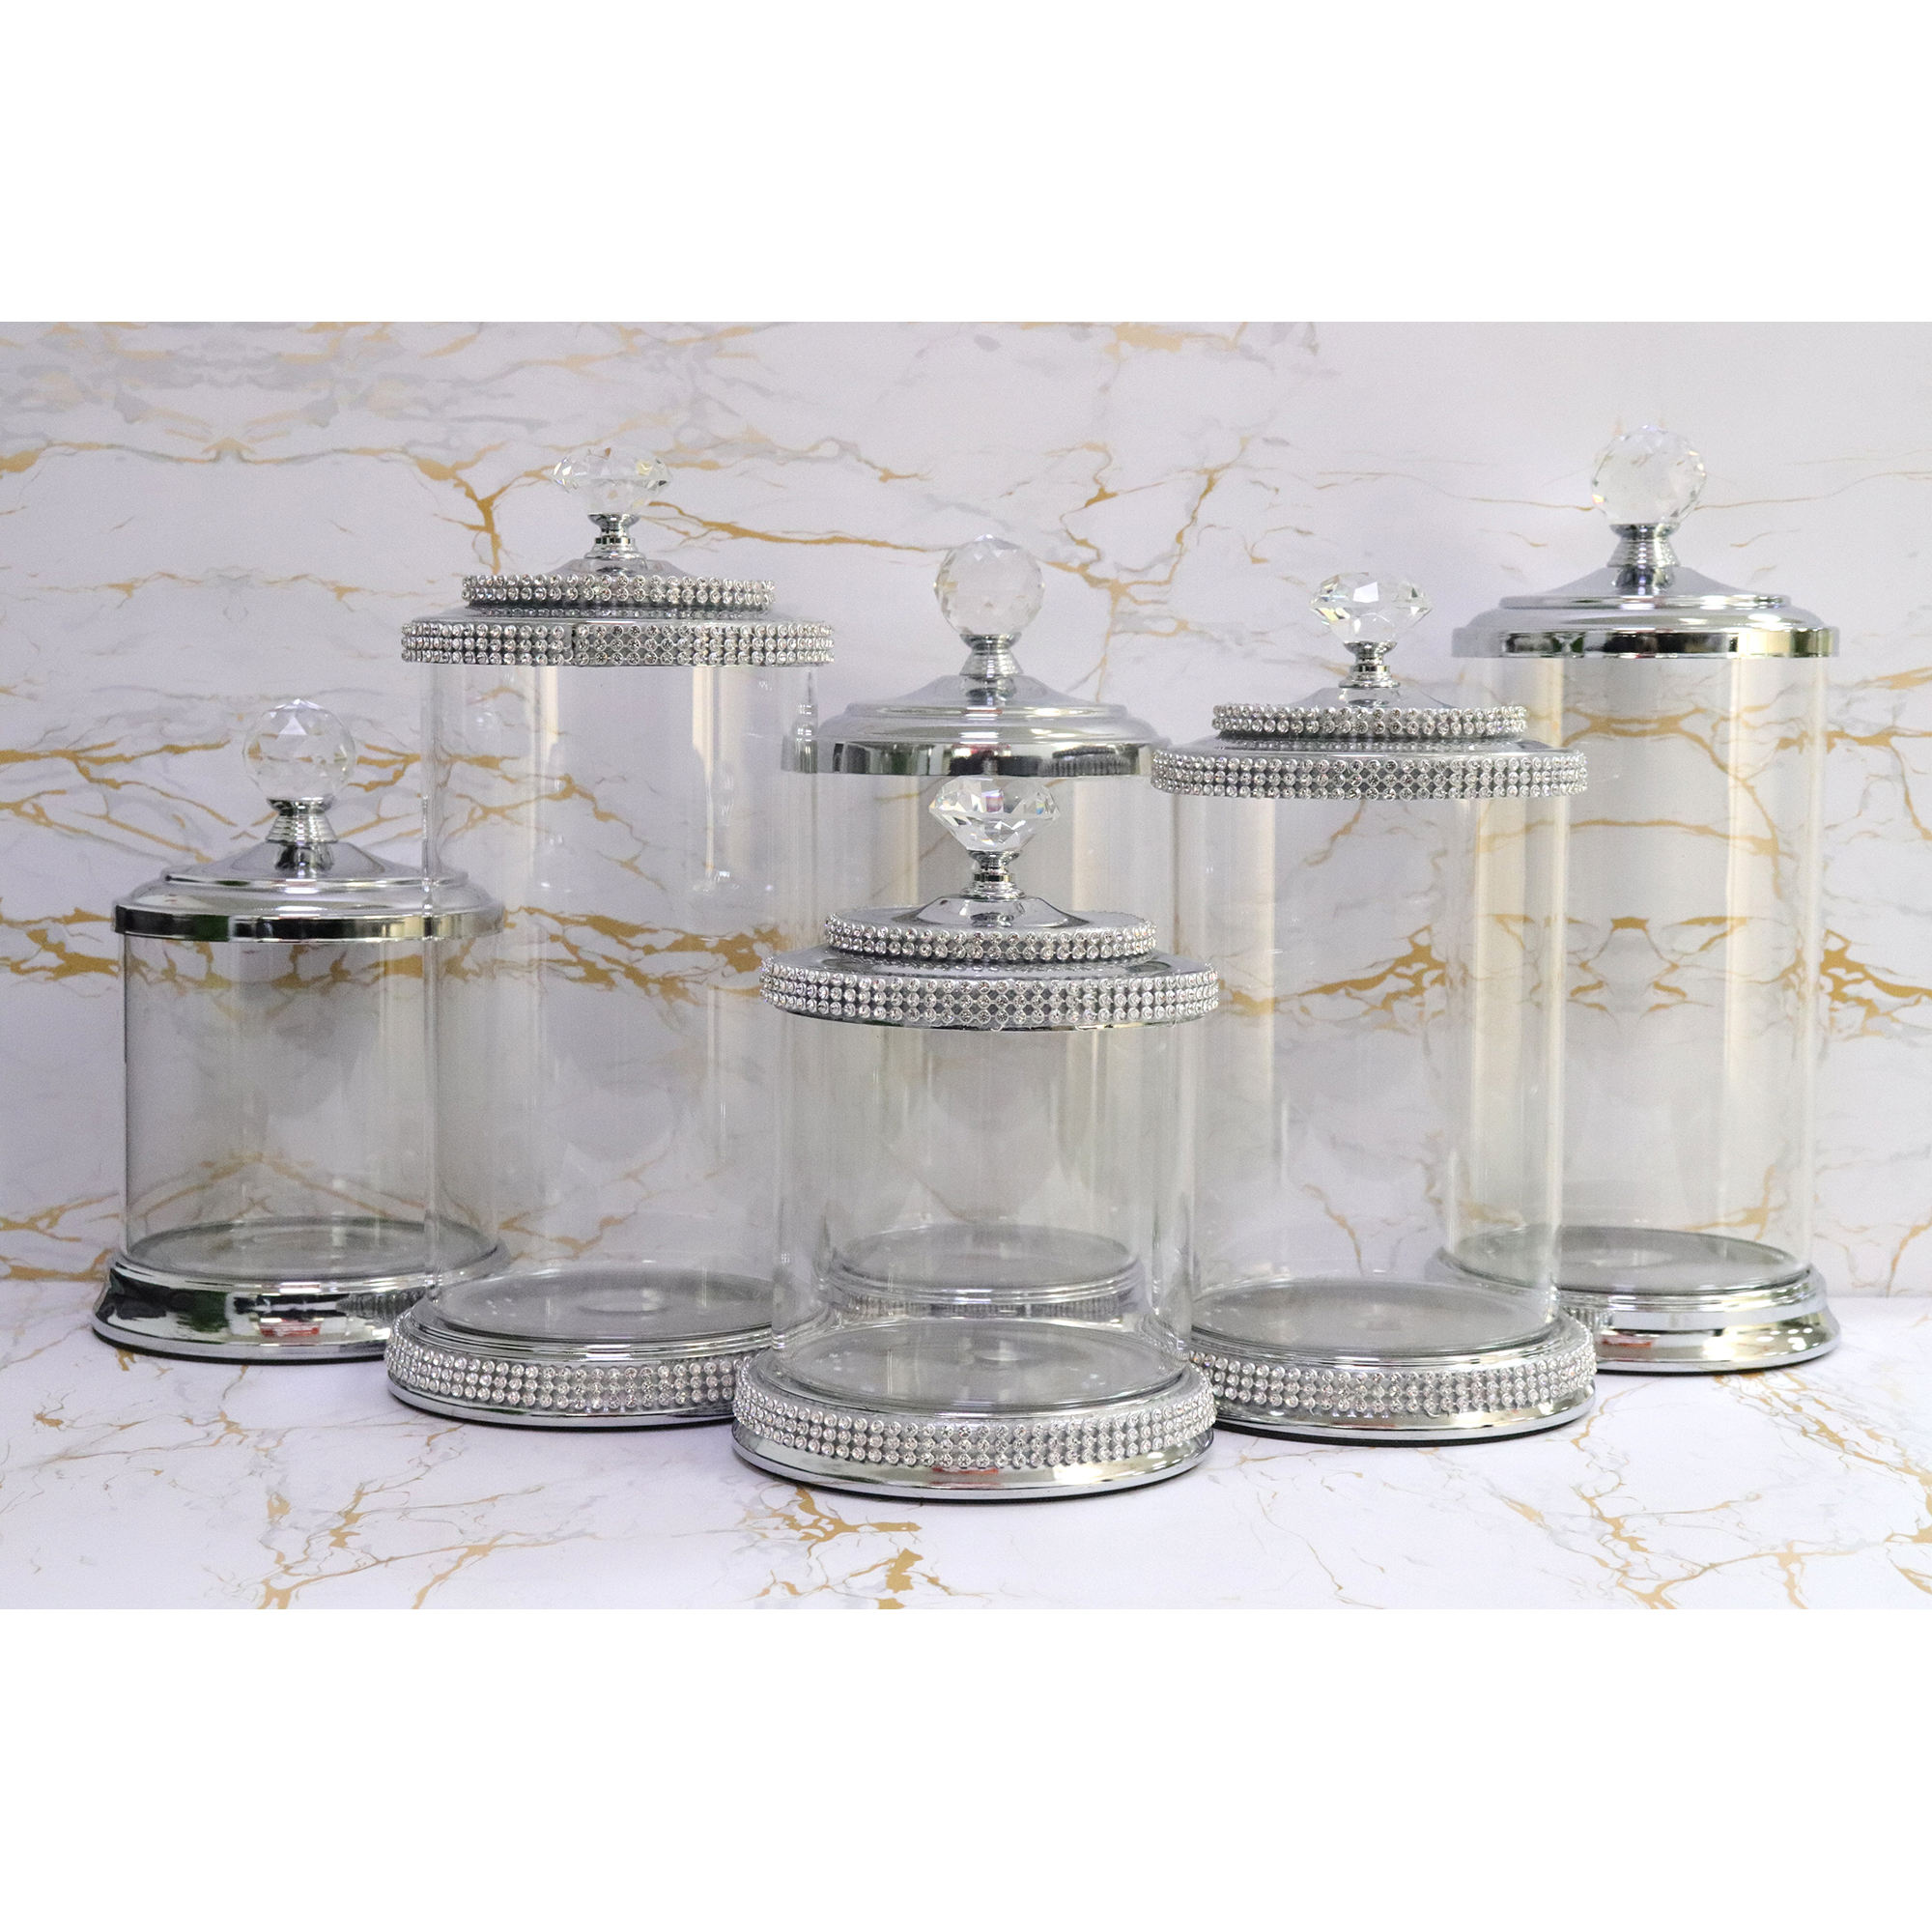 Glass Jar Silver Decor Acrylic Cookie Candy Weed Wholesale Mason Luxury Crystal Storage Bottles Containers Glass Jar With Lid